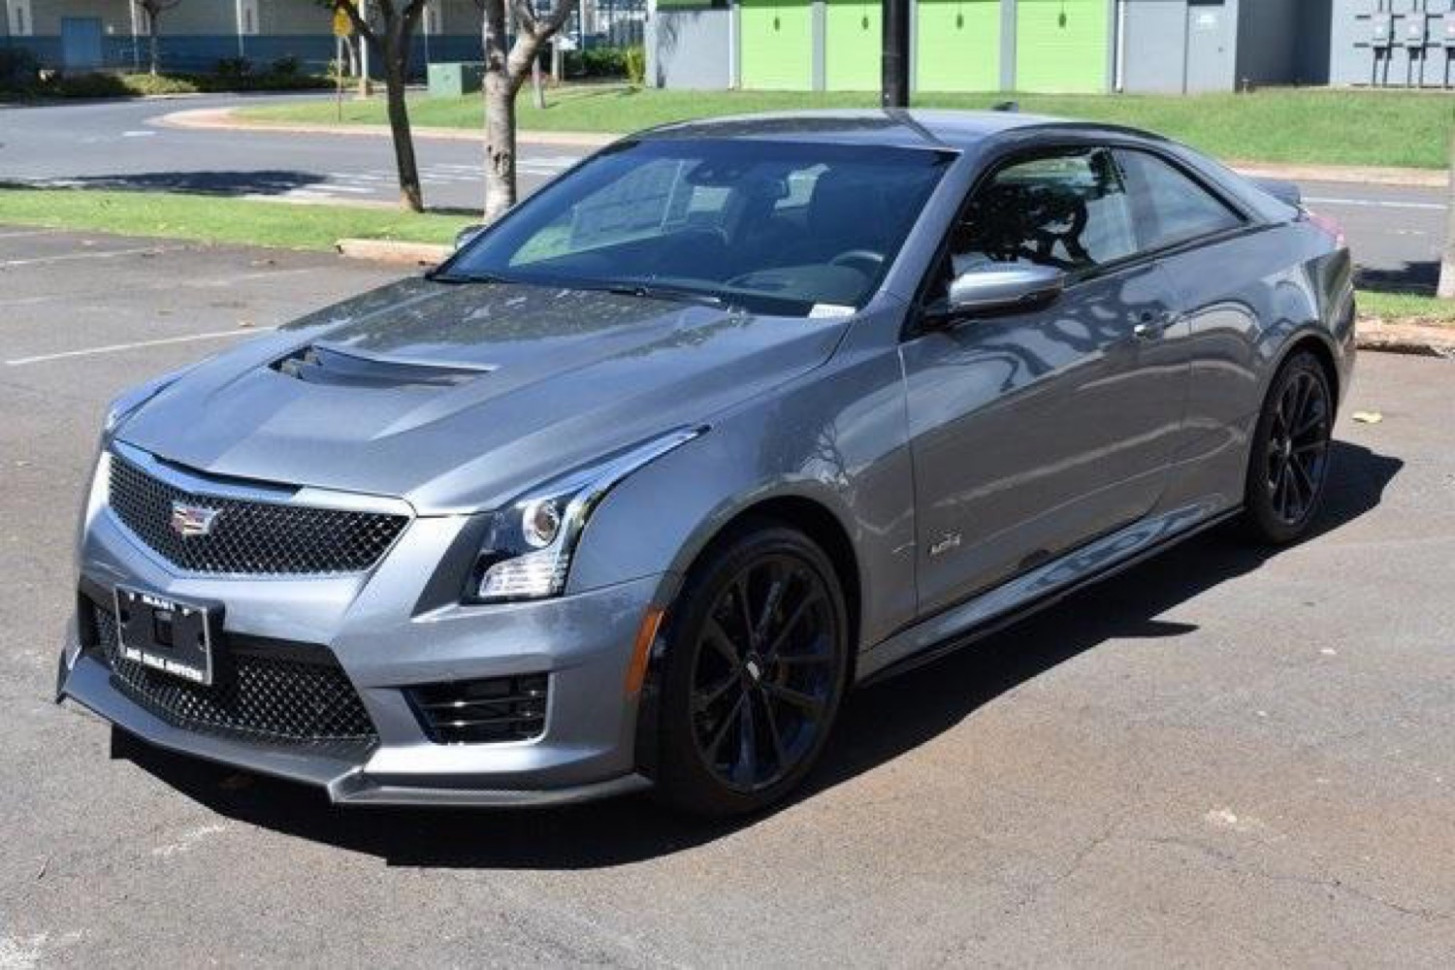 New 6 Cadillac ATS-V Coupe For Sale At Dealer In Hawaii | GM ...